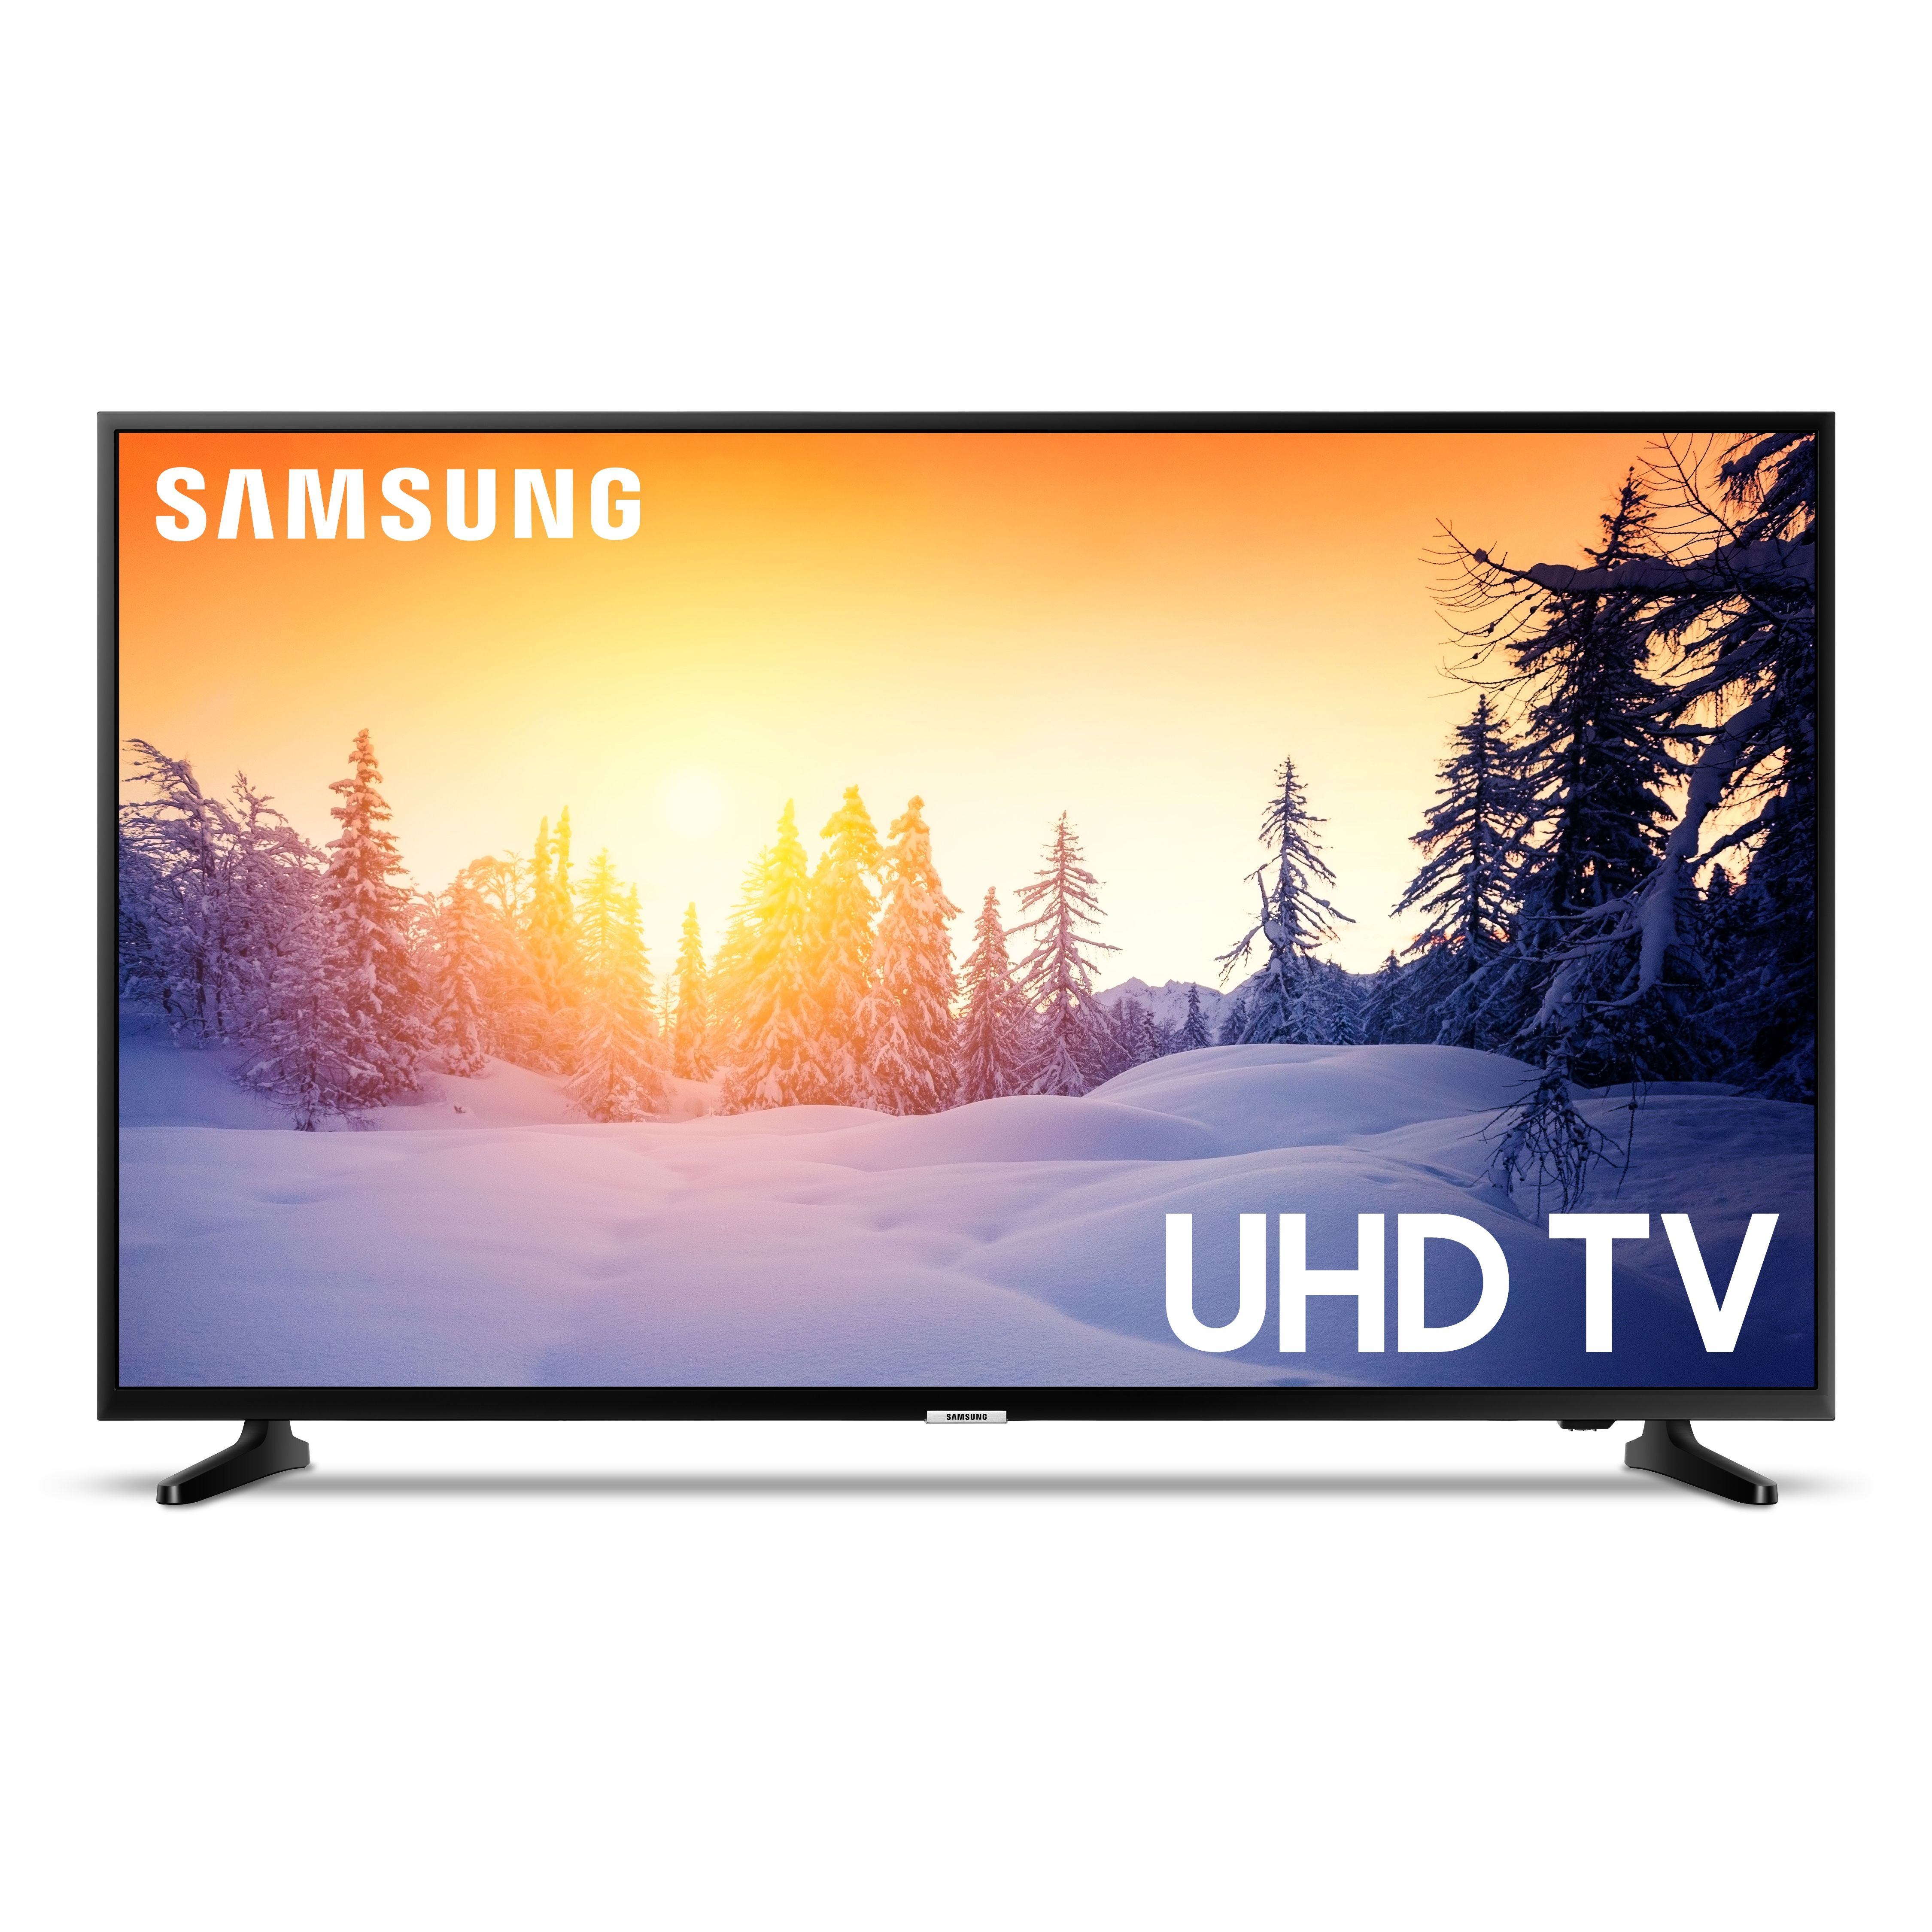 Samsung 65 Class 4k Uhd 2160p Led Smart Tv With Hdr Un65nu6900 Walmart Com Samsung Tvs Samsung Smart Tv Smart Tv